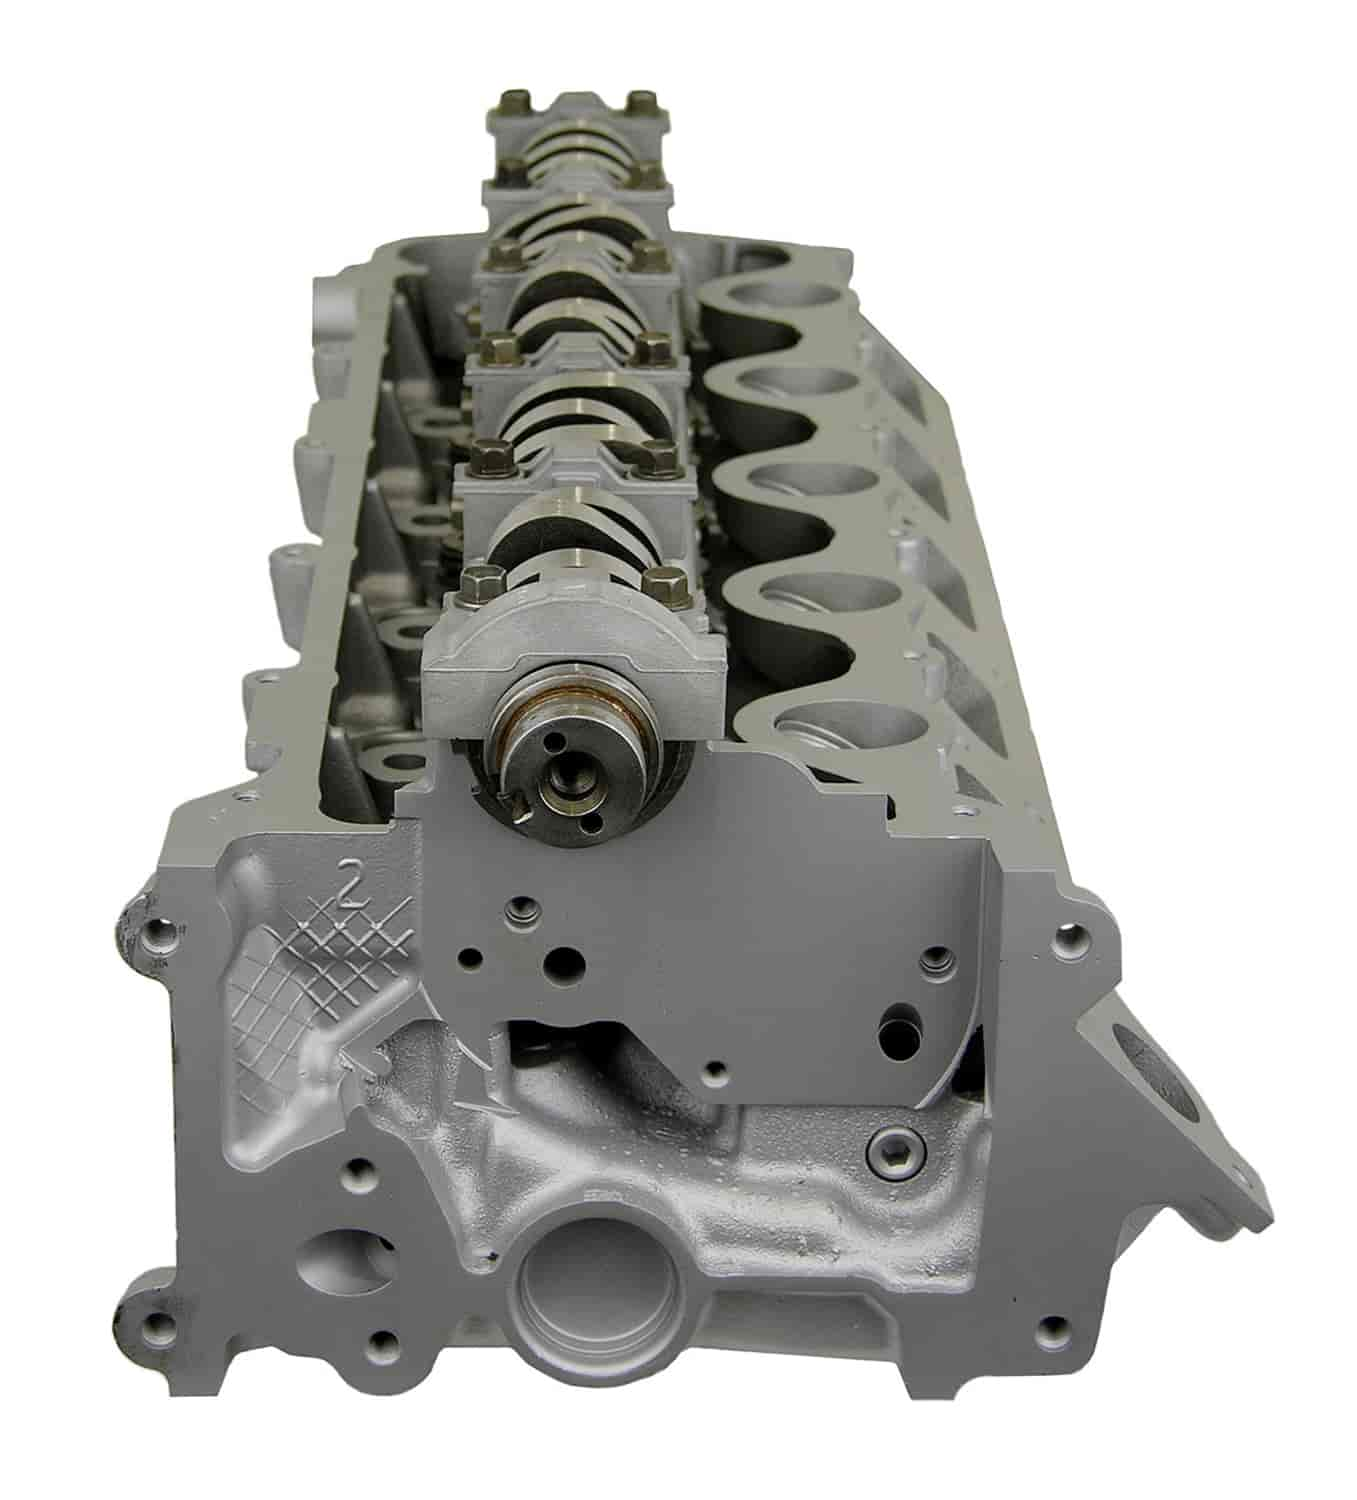 atk engines 2fdzr remanufactured cylinder head for 2005. Black Bedroom Furniture Sets. Home Design Ideas